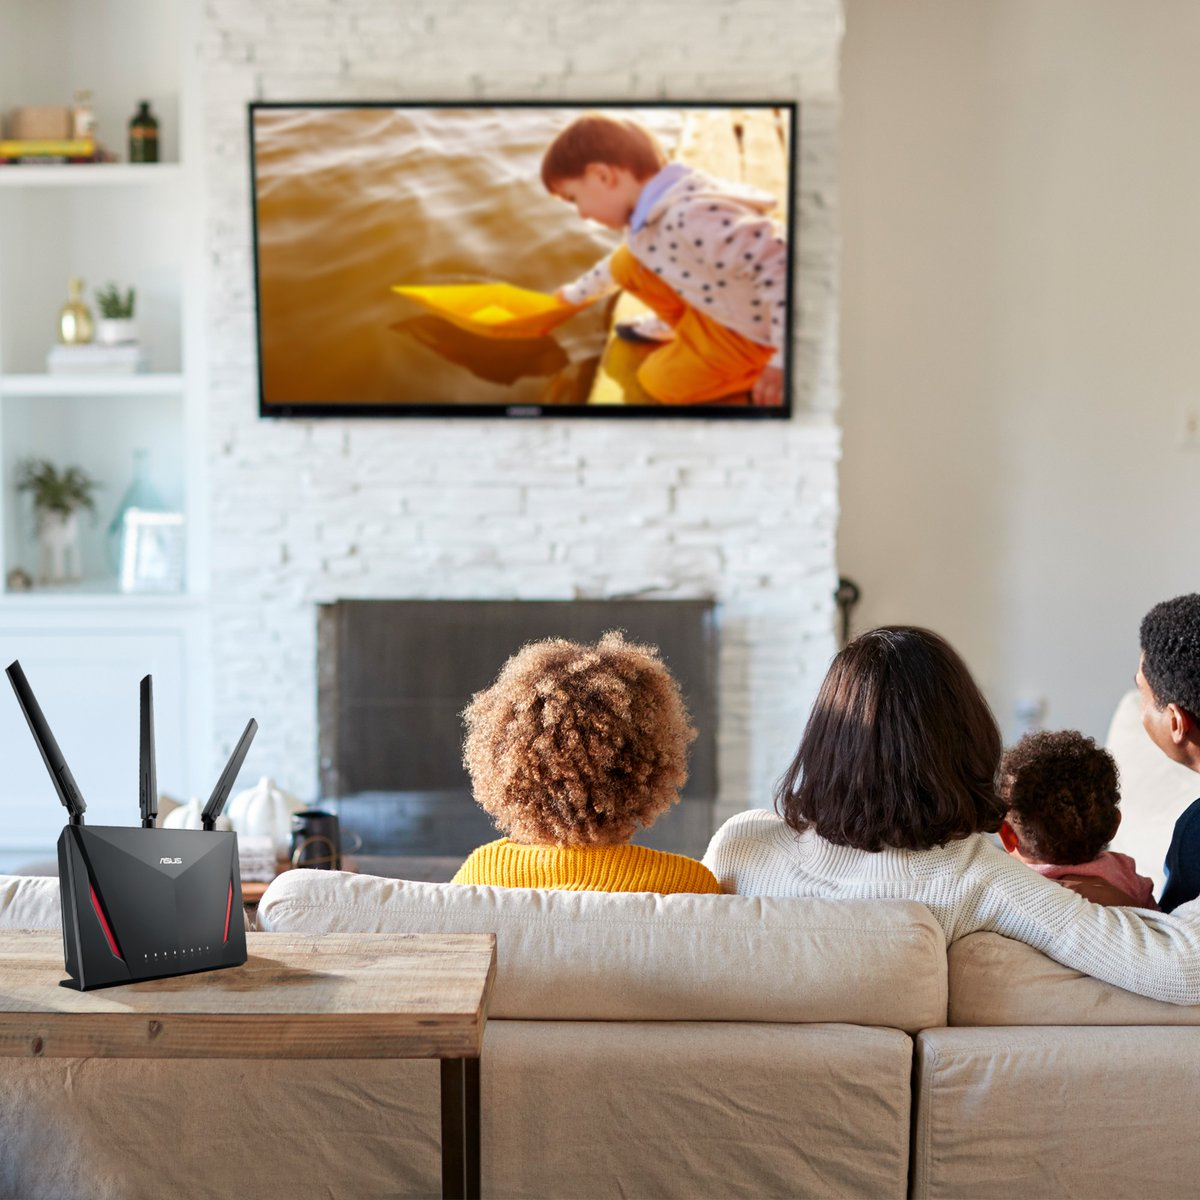 Have a smooth WiFi connection while binge watching your favorite show! Turn on the new Adaptive Quality of Service (QoS) feature in your ASUS RT-AC86U Router App. And prioritize all your home network's bandwidth into media streaming apps.  More Info: https://t.co/3zsolKonYx https://t.co/4QmBOn4UCB